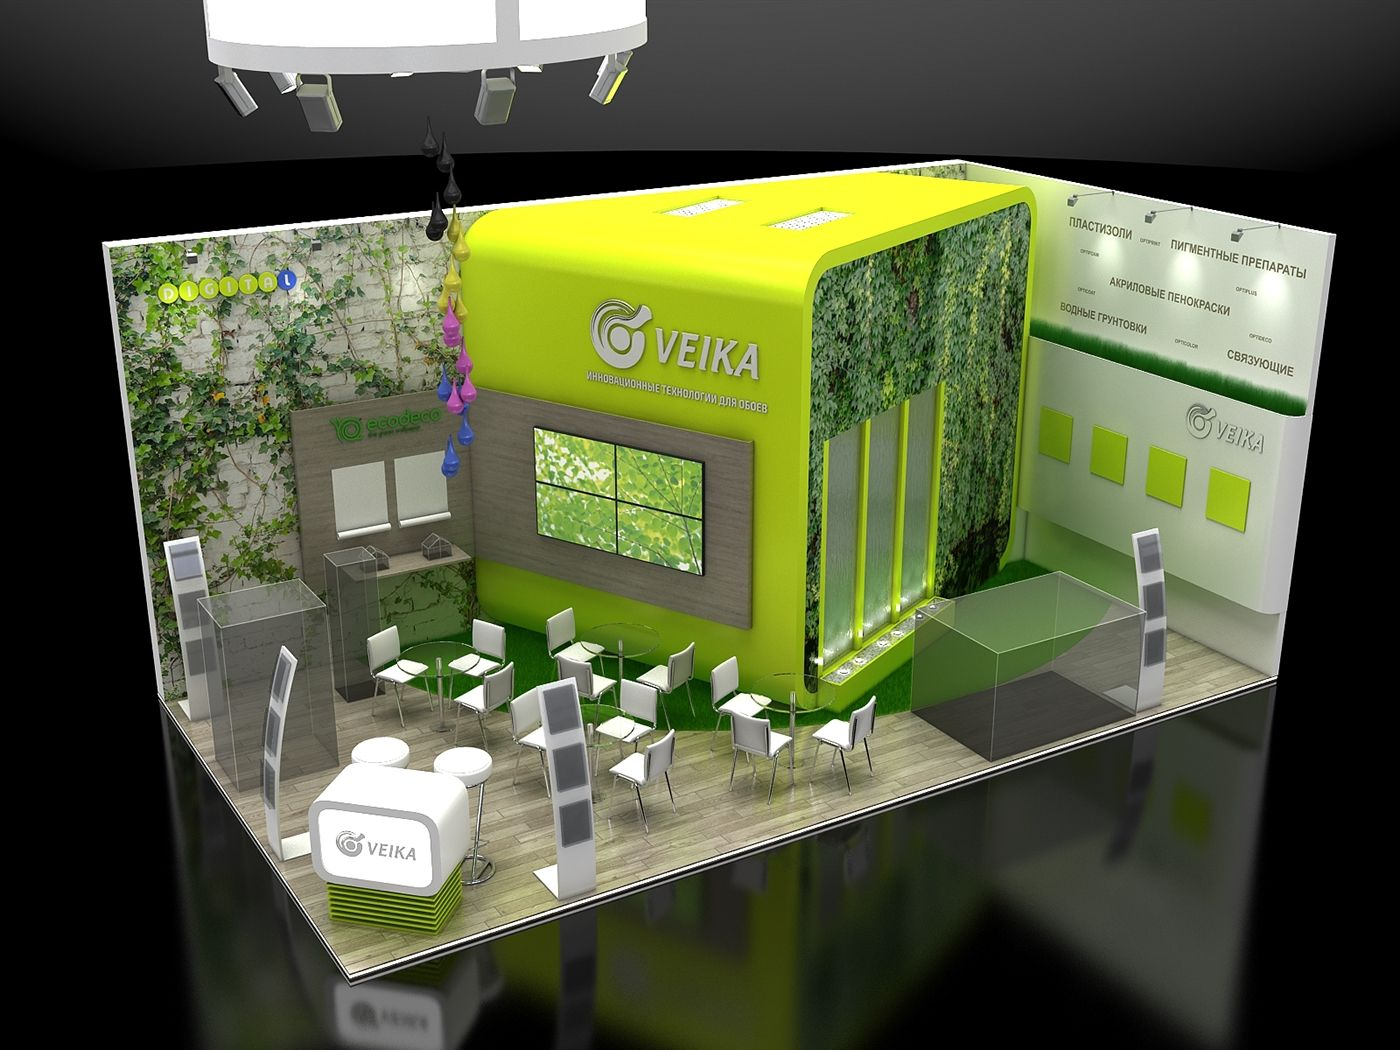 exhibition stands 2015 2016 on behance exhibition ideasexhibition boothexhibition standsstand designbooth